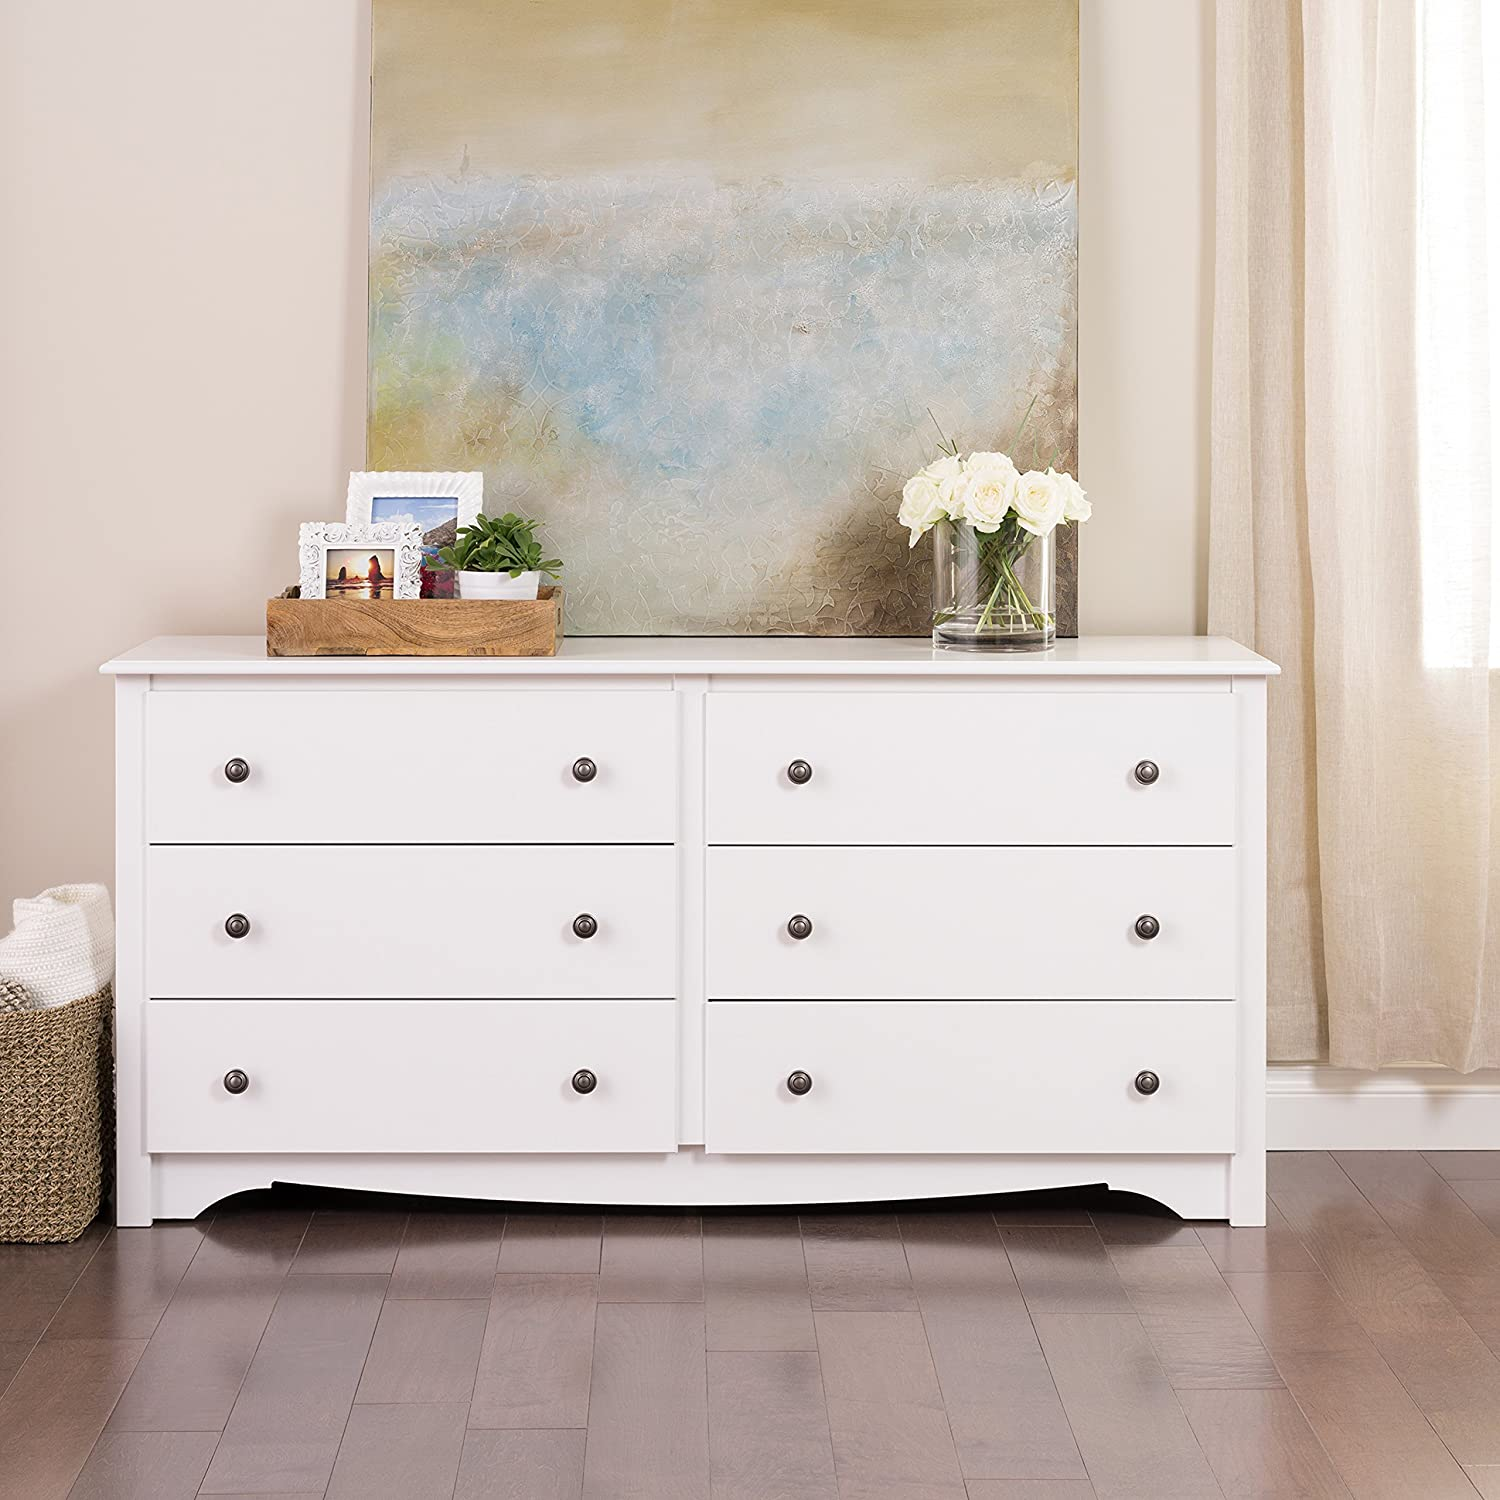 Amazon.com: White Monterey 6 Drawer Dresser: Kitchen & Dining